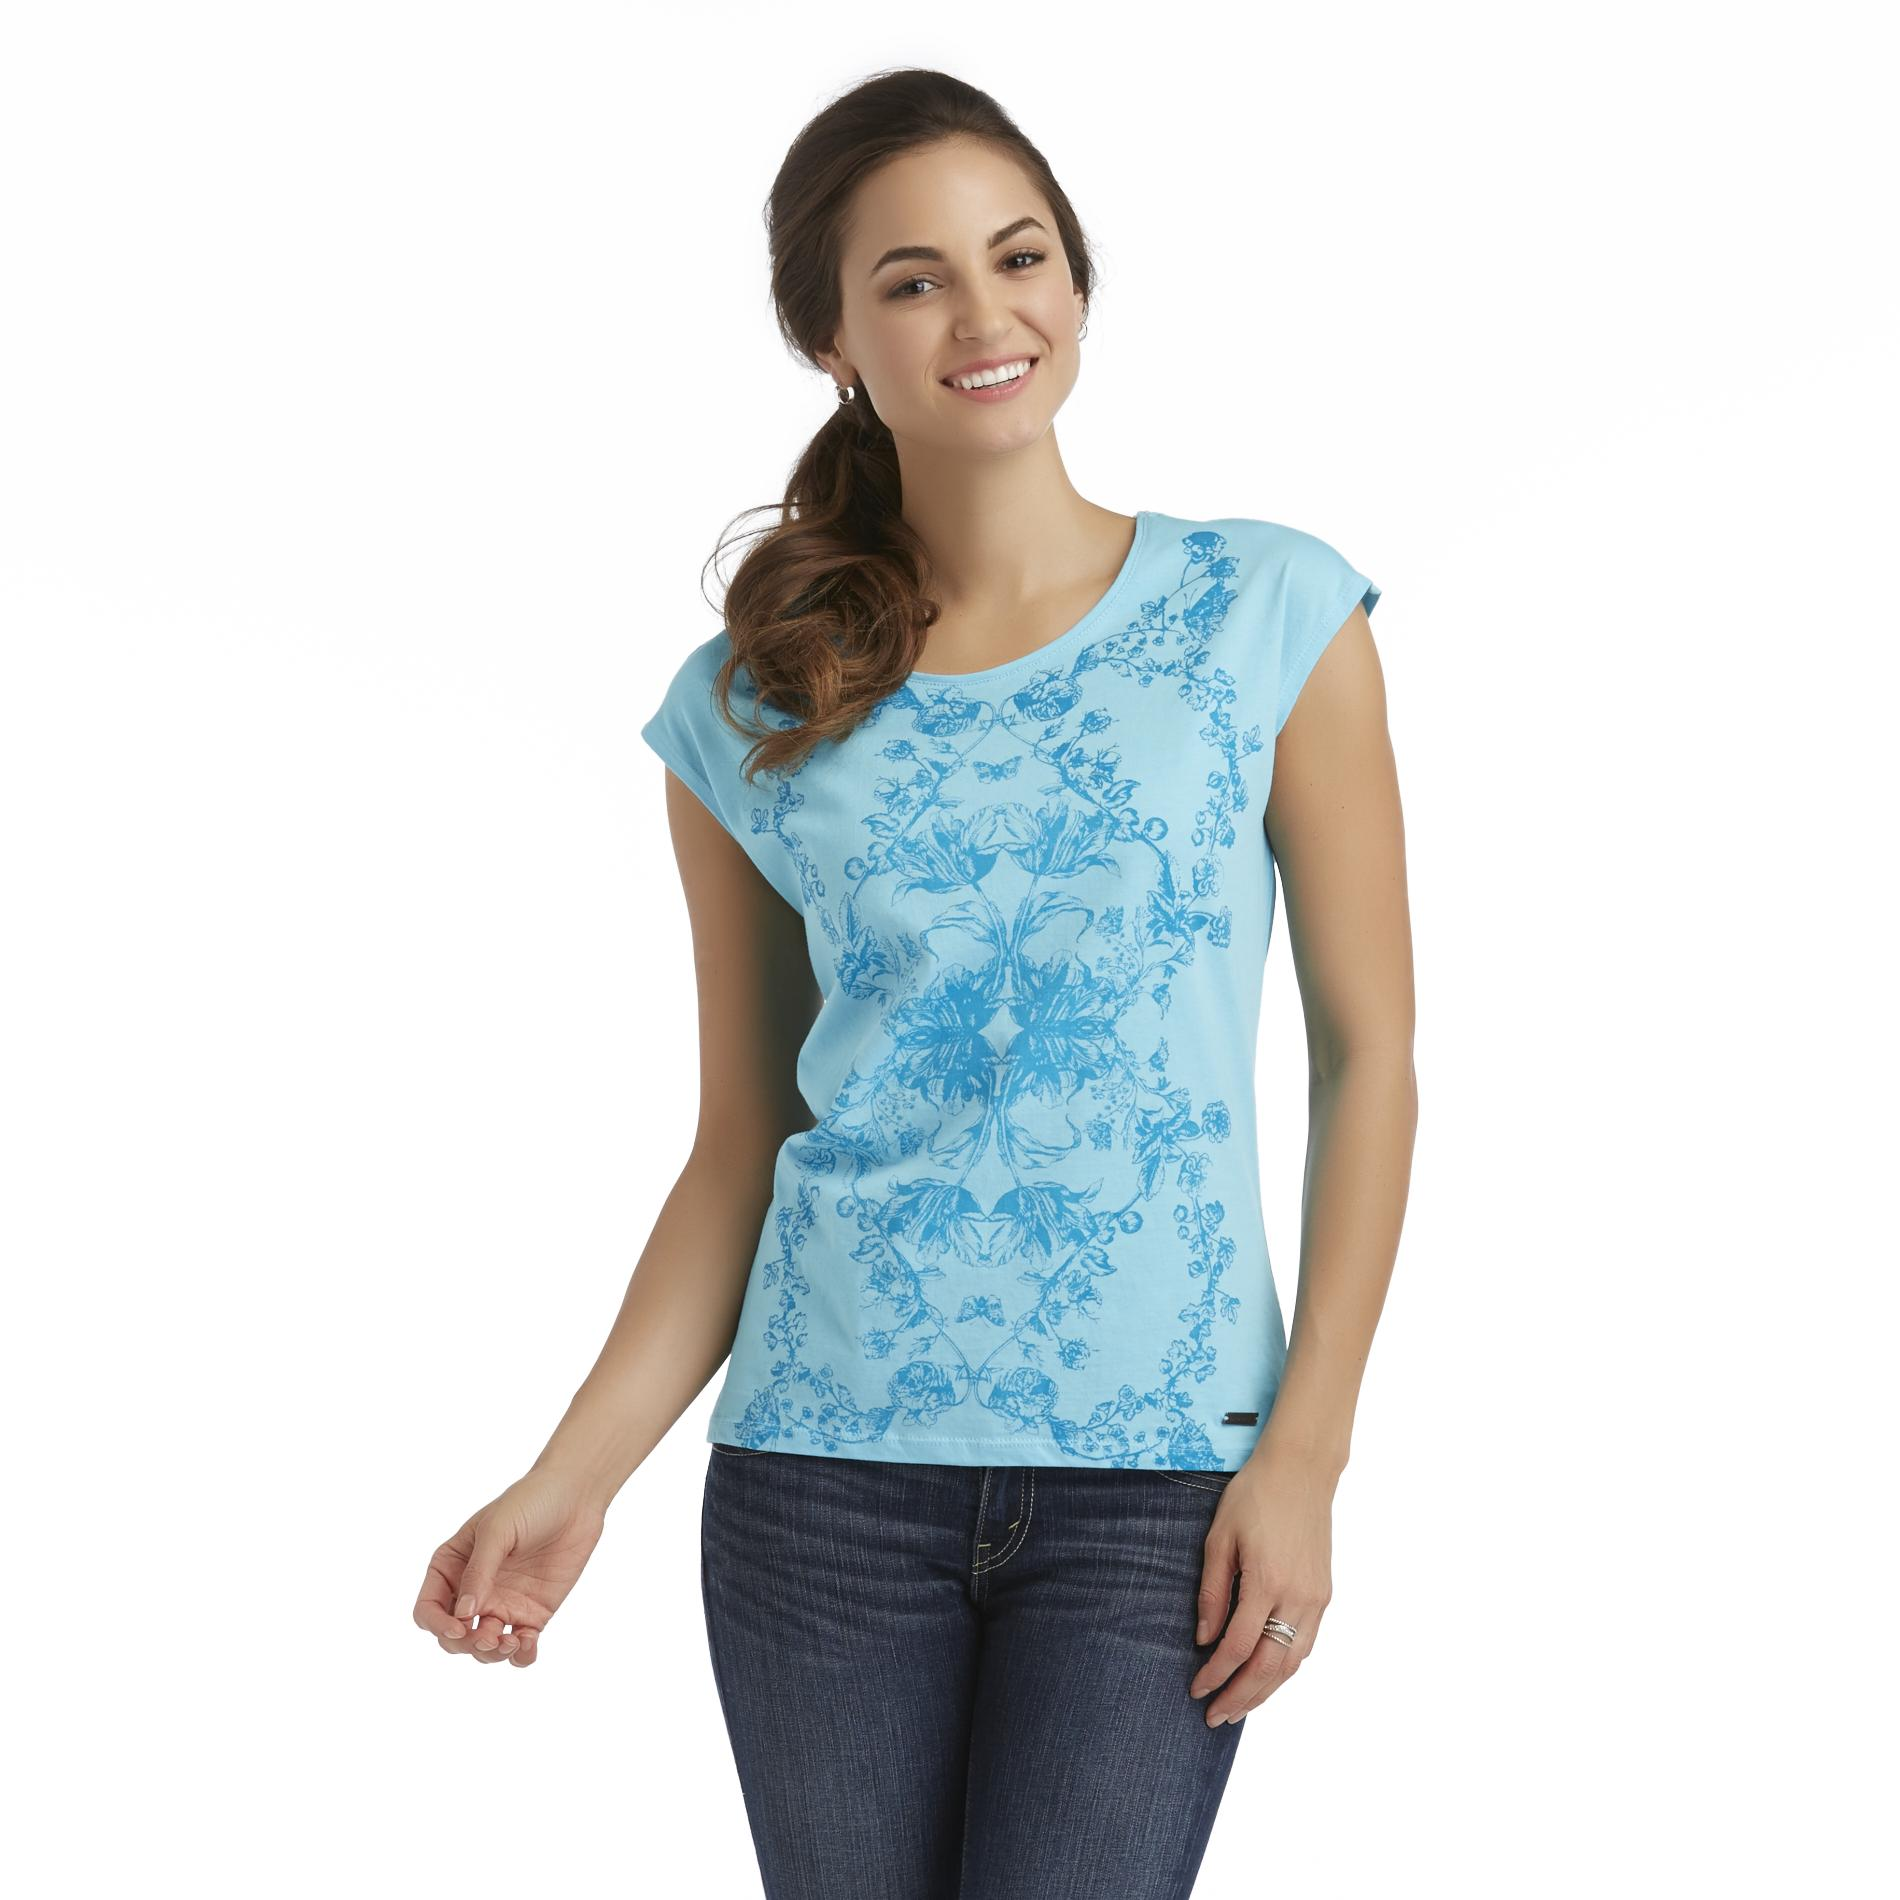 U.S. Polo Assn. Women's Sleeveless Top - Floral at Sears.com